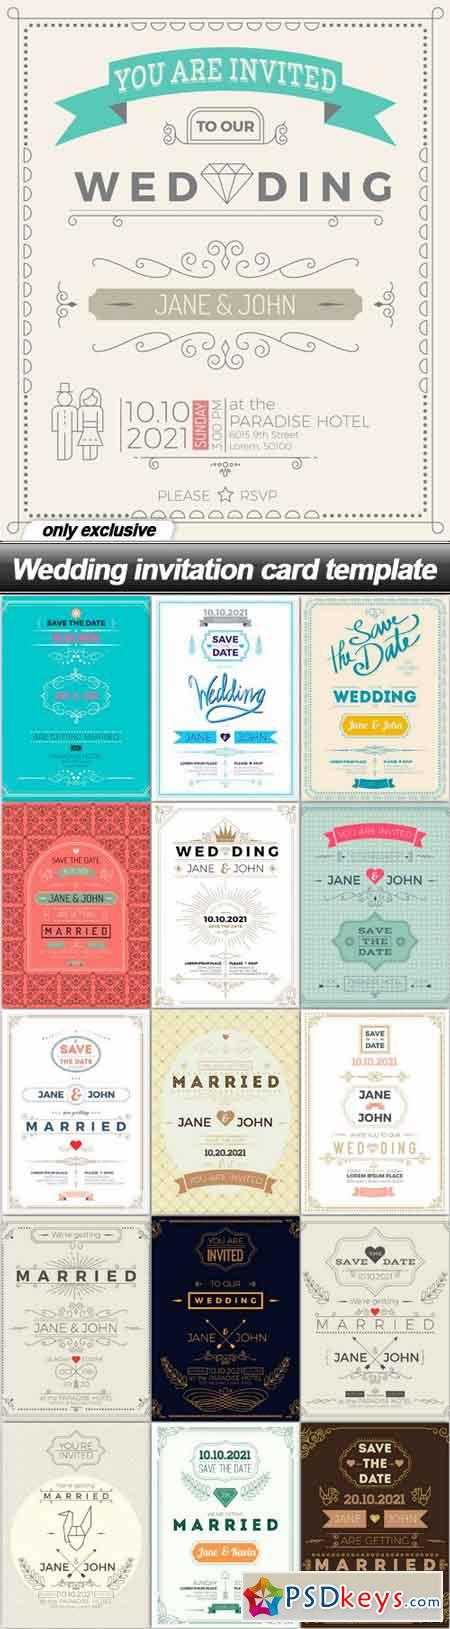 Wedding invitation card template - 16 EPS